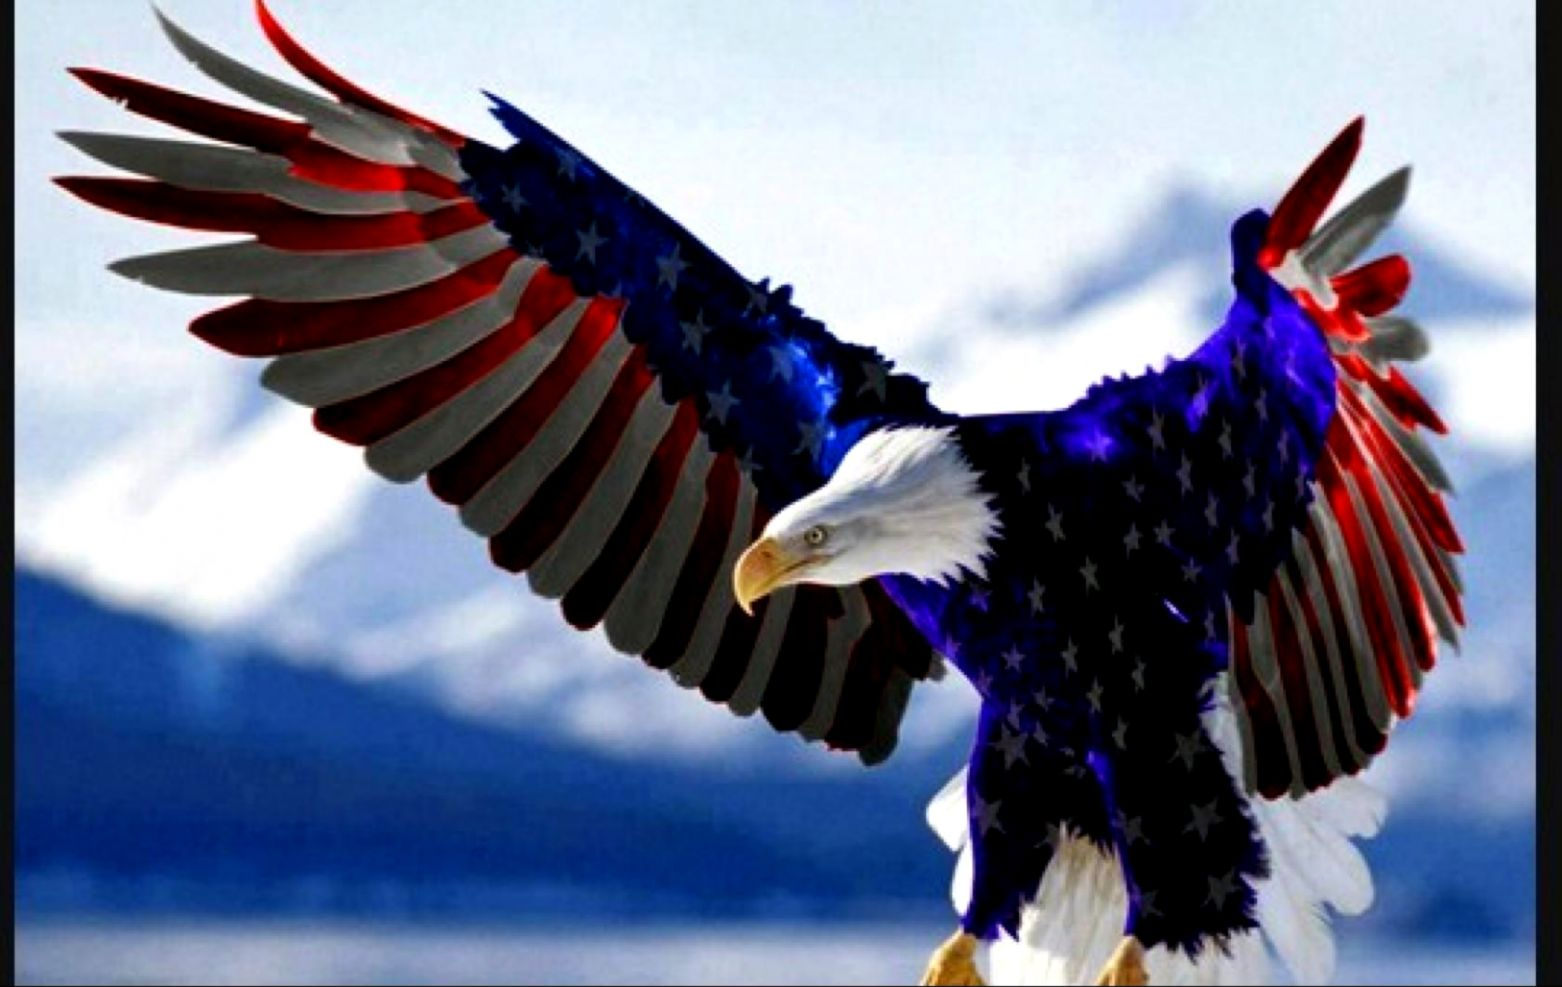 Awesome Eagle Front American Flag Wallpaper Wallpapers Insert